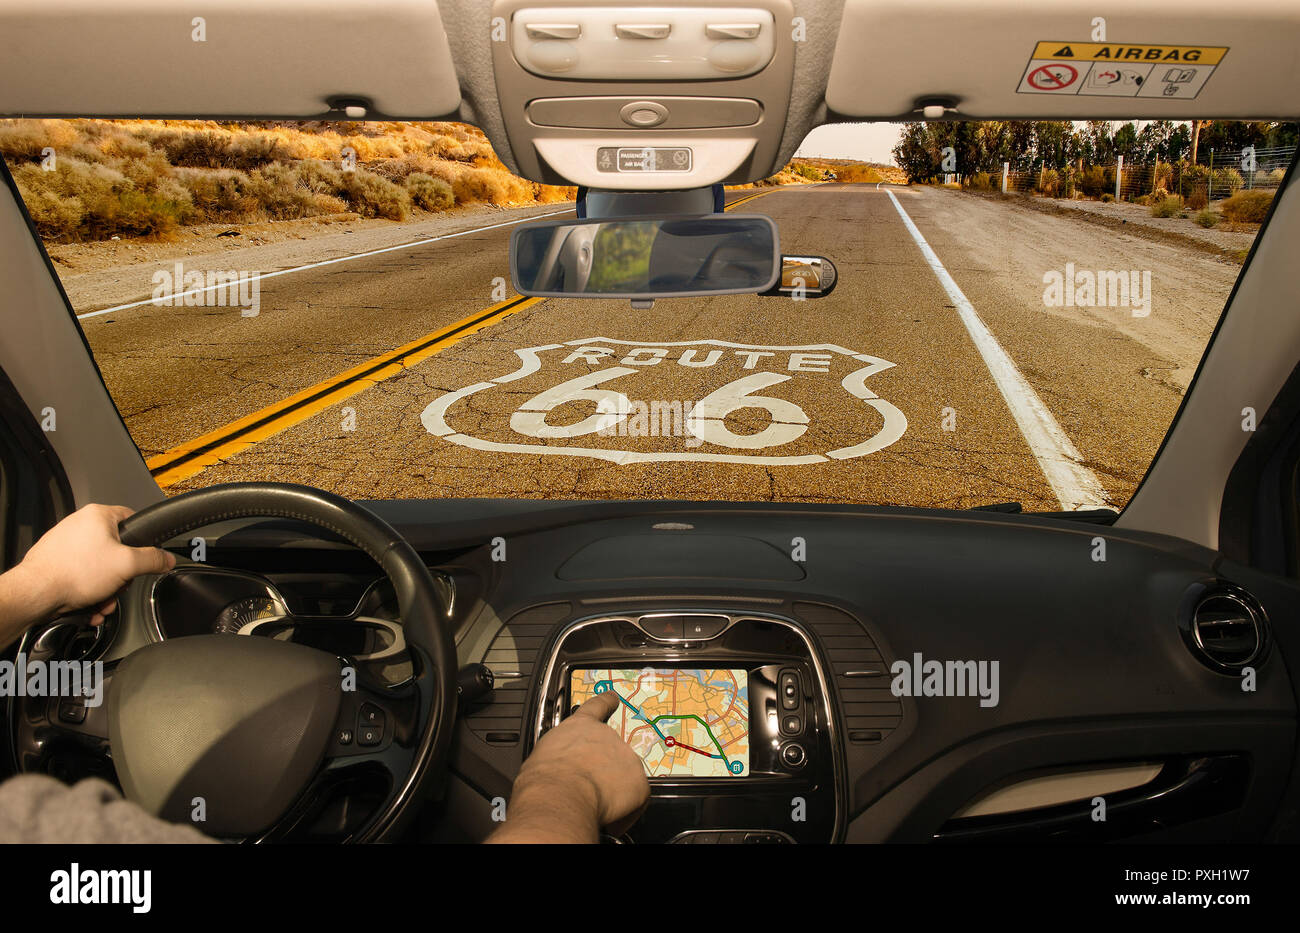 Driving a car while using the touch screen of a GPS navigation system on the Historic Route 66 in California, USA - Stock Image